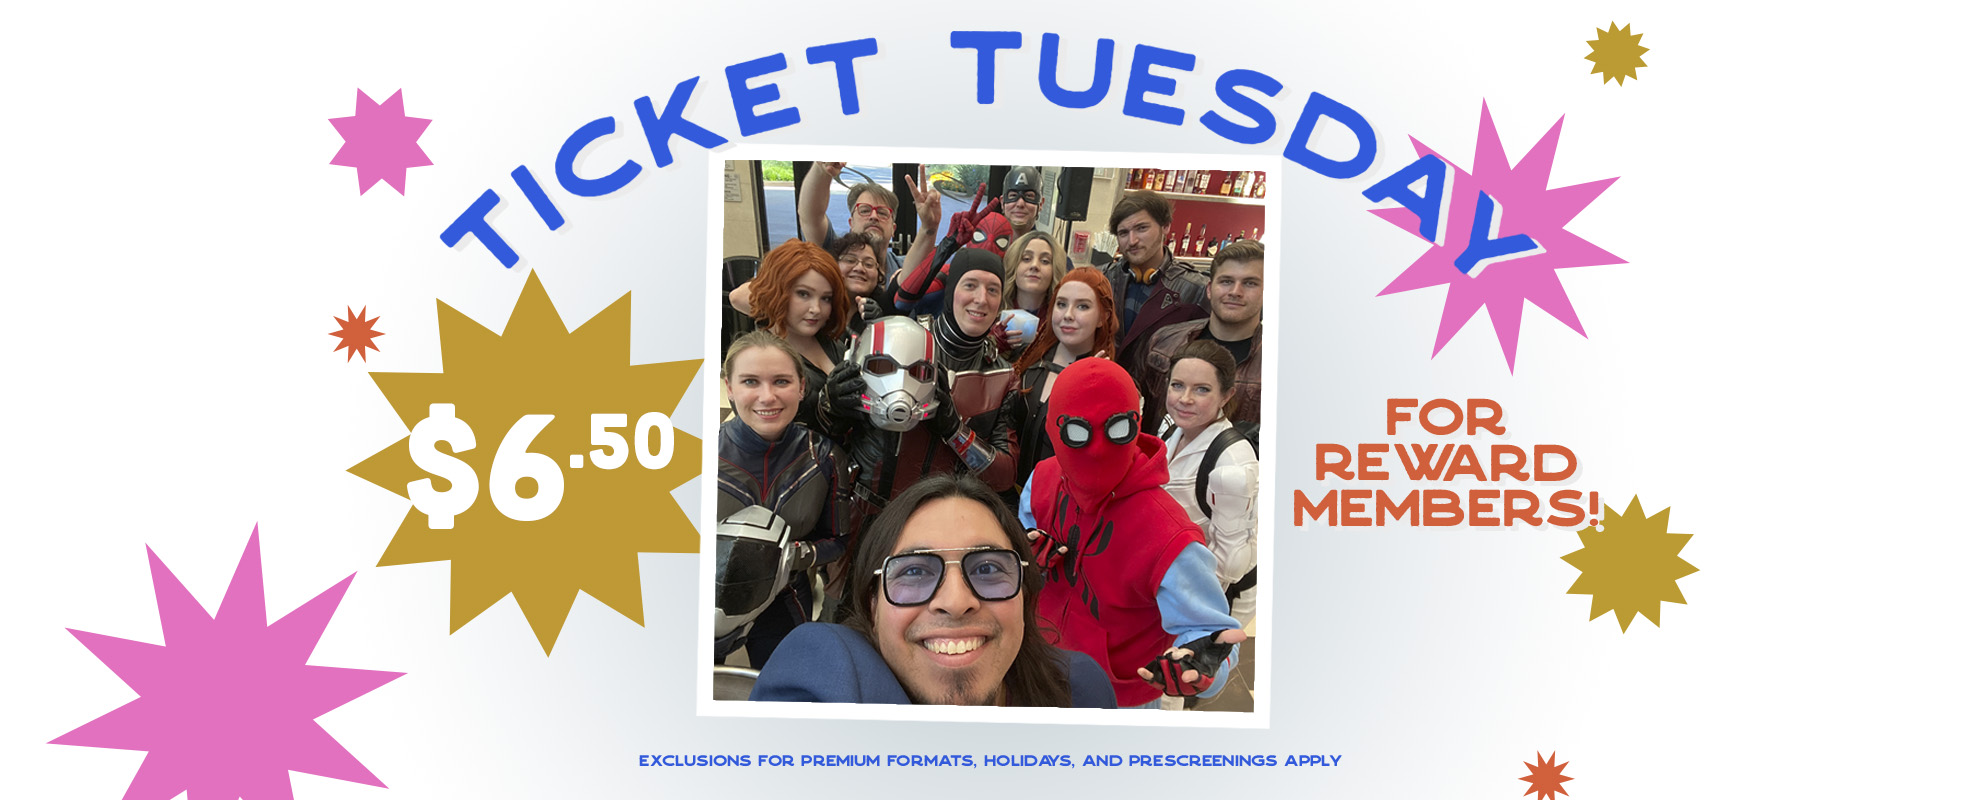 $6.50 Ticket Tuesday image